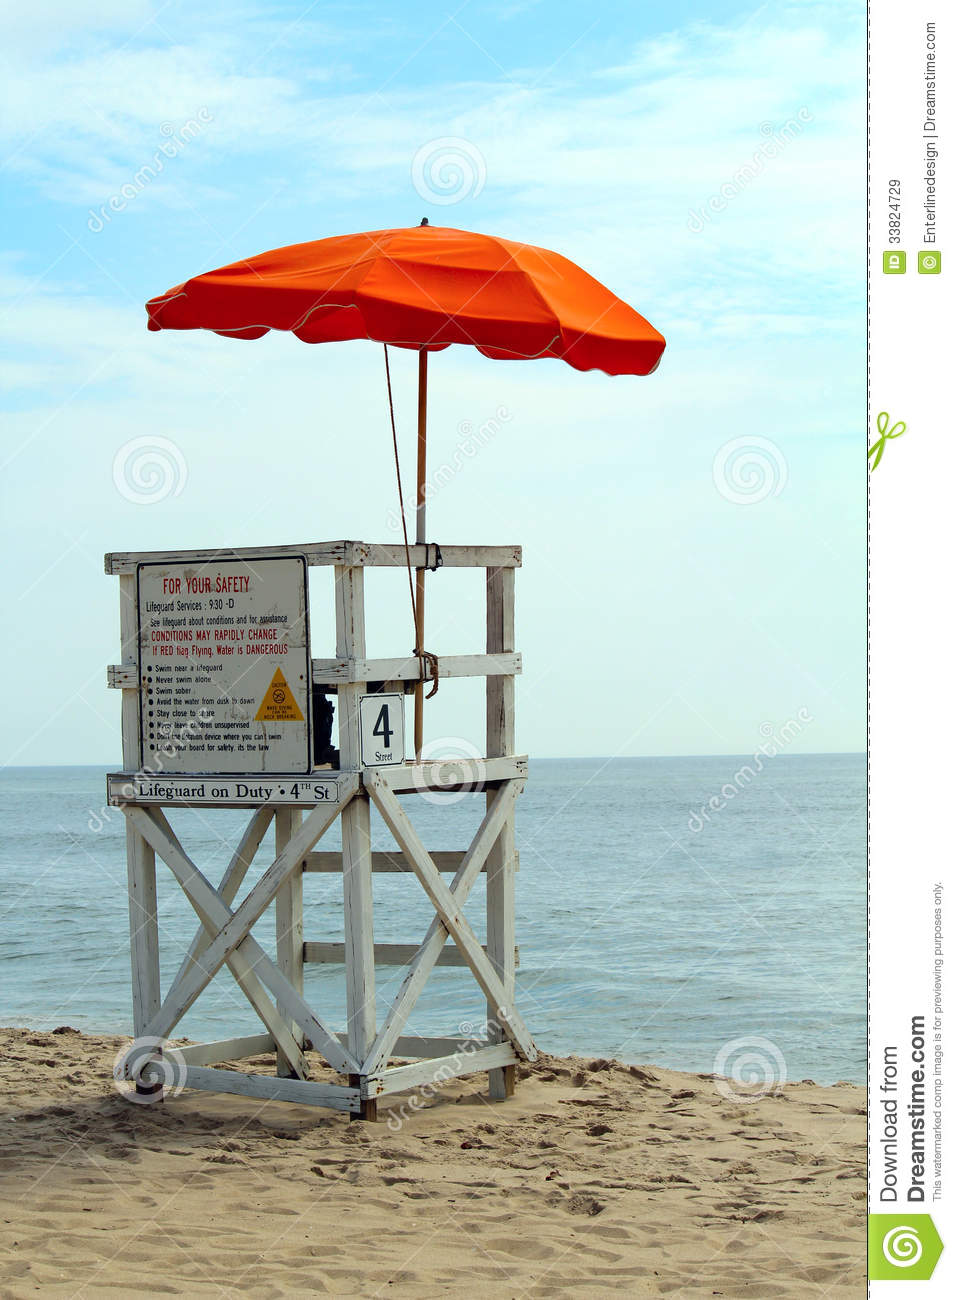 lifeguard tower royalty free stock images image 33824729 Lifeguard Clip Art lifeguard tower clipart